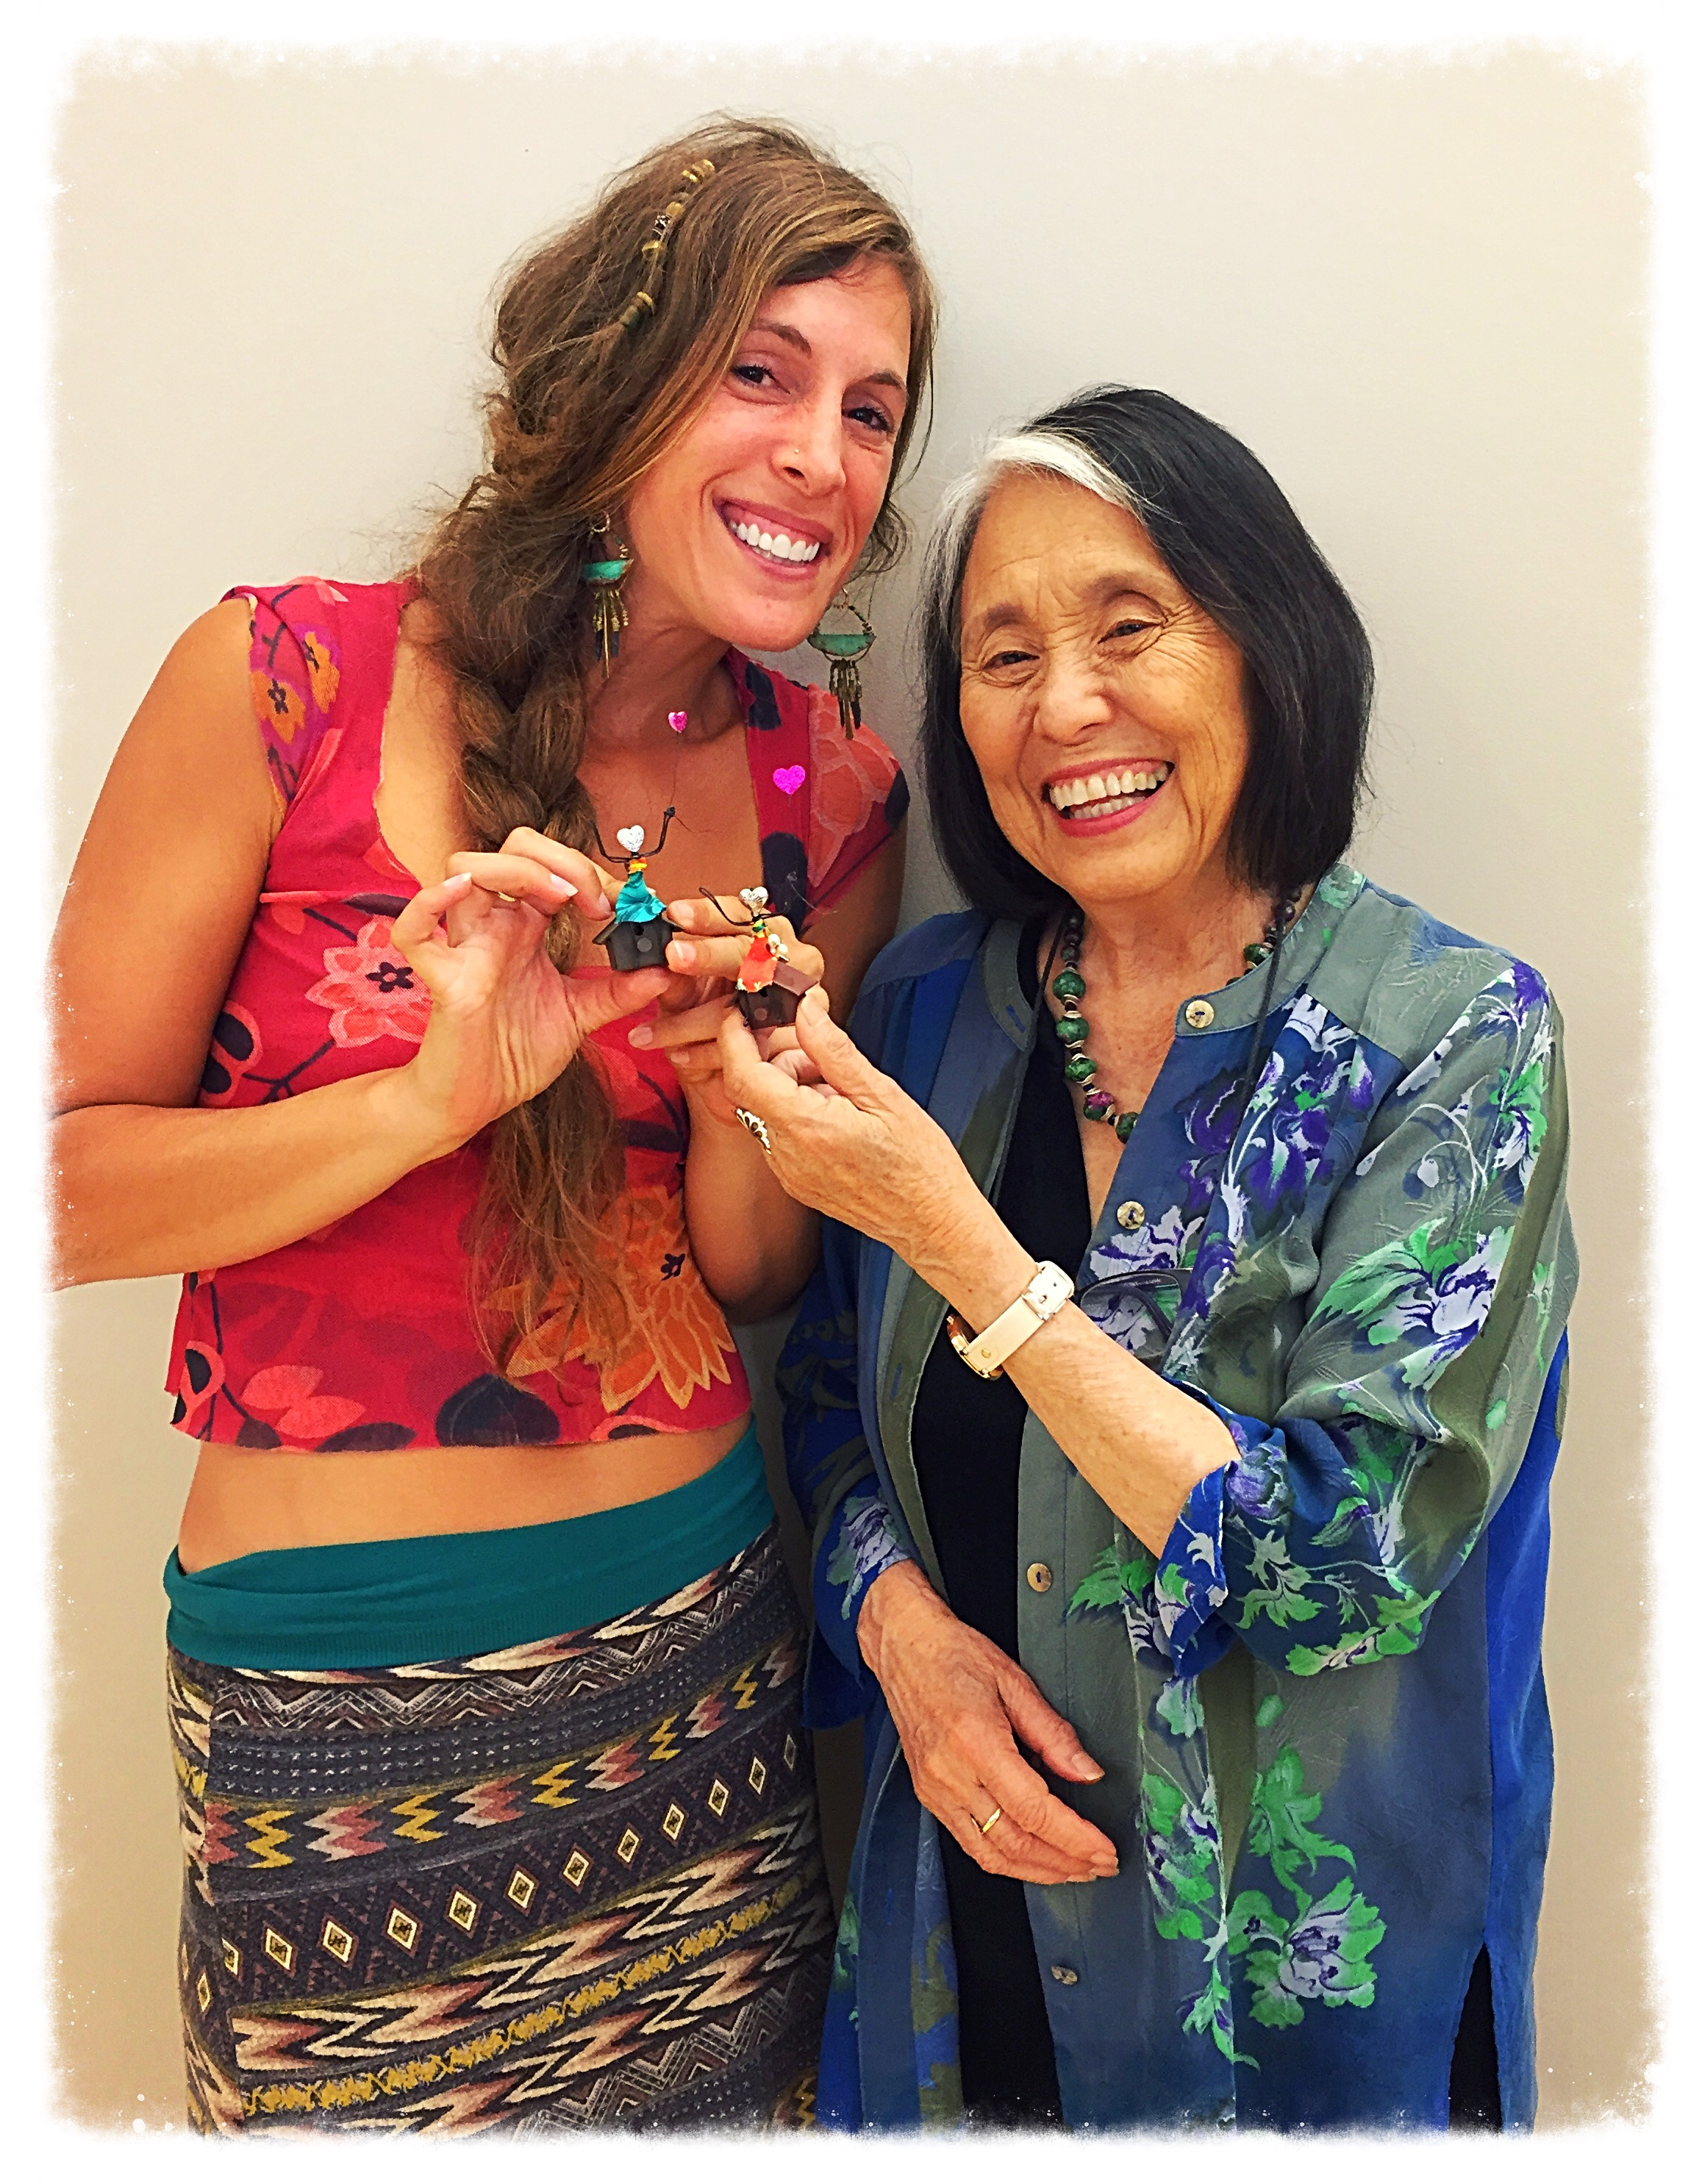 WHENEVER YOU GET THE CHANCE.... ASK ME ABOUT OR LOOK UP JEAN SHINODA BOLEN... JUNGIAN ANALYST, AUTHOR, DOCTOR, ACTIVIST AS WELL AS ..BEING ONE OF MY BIGGEST INSPIRATIONS, TEACHING ME OPEN HEARTED PERSEVERANCE WITH VISIONARY THINKING, PUTTING MY LOVE, MY MAGICAL WAY, INTO ACTION AS WE SHIFT INTO THESE NEW EXCITING TIMES!! -